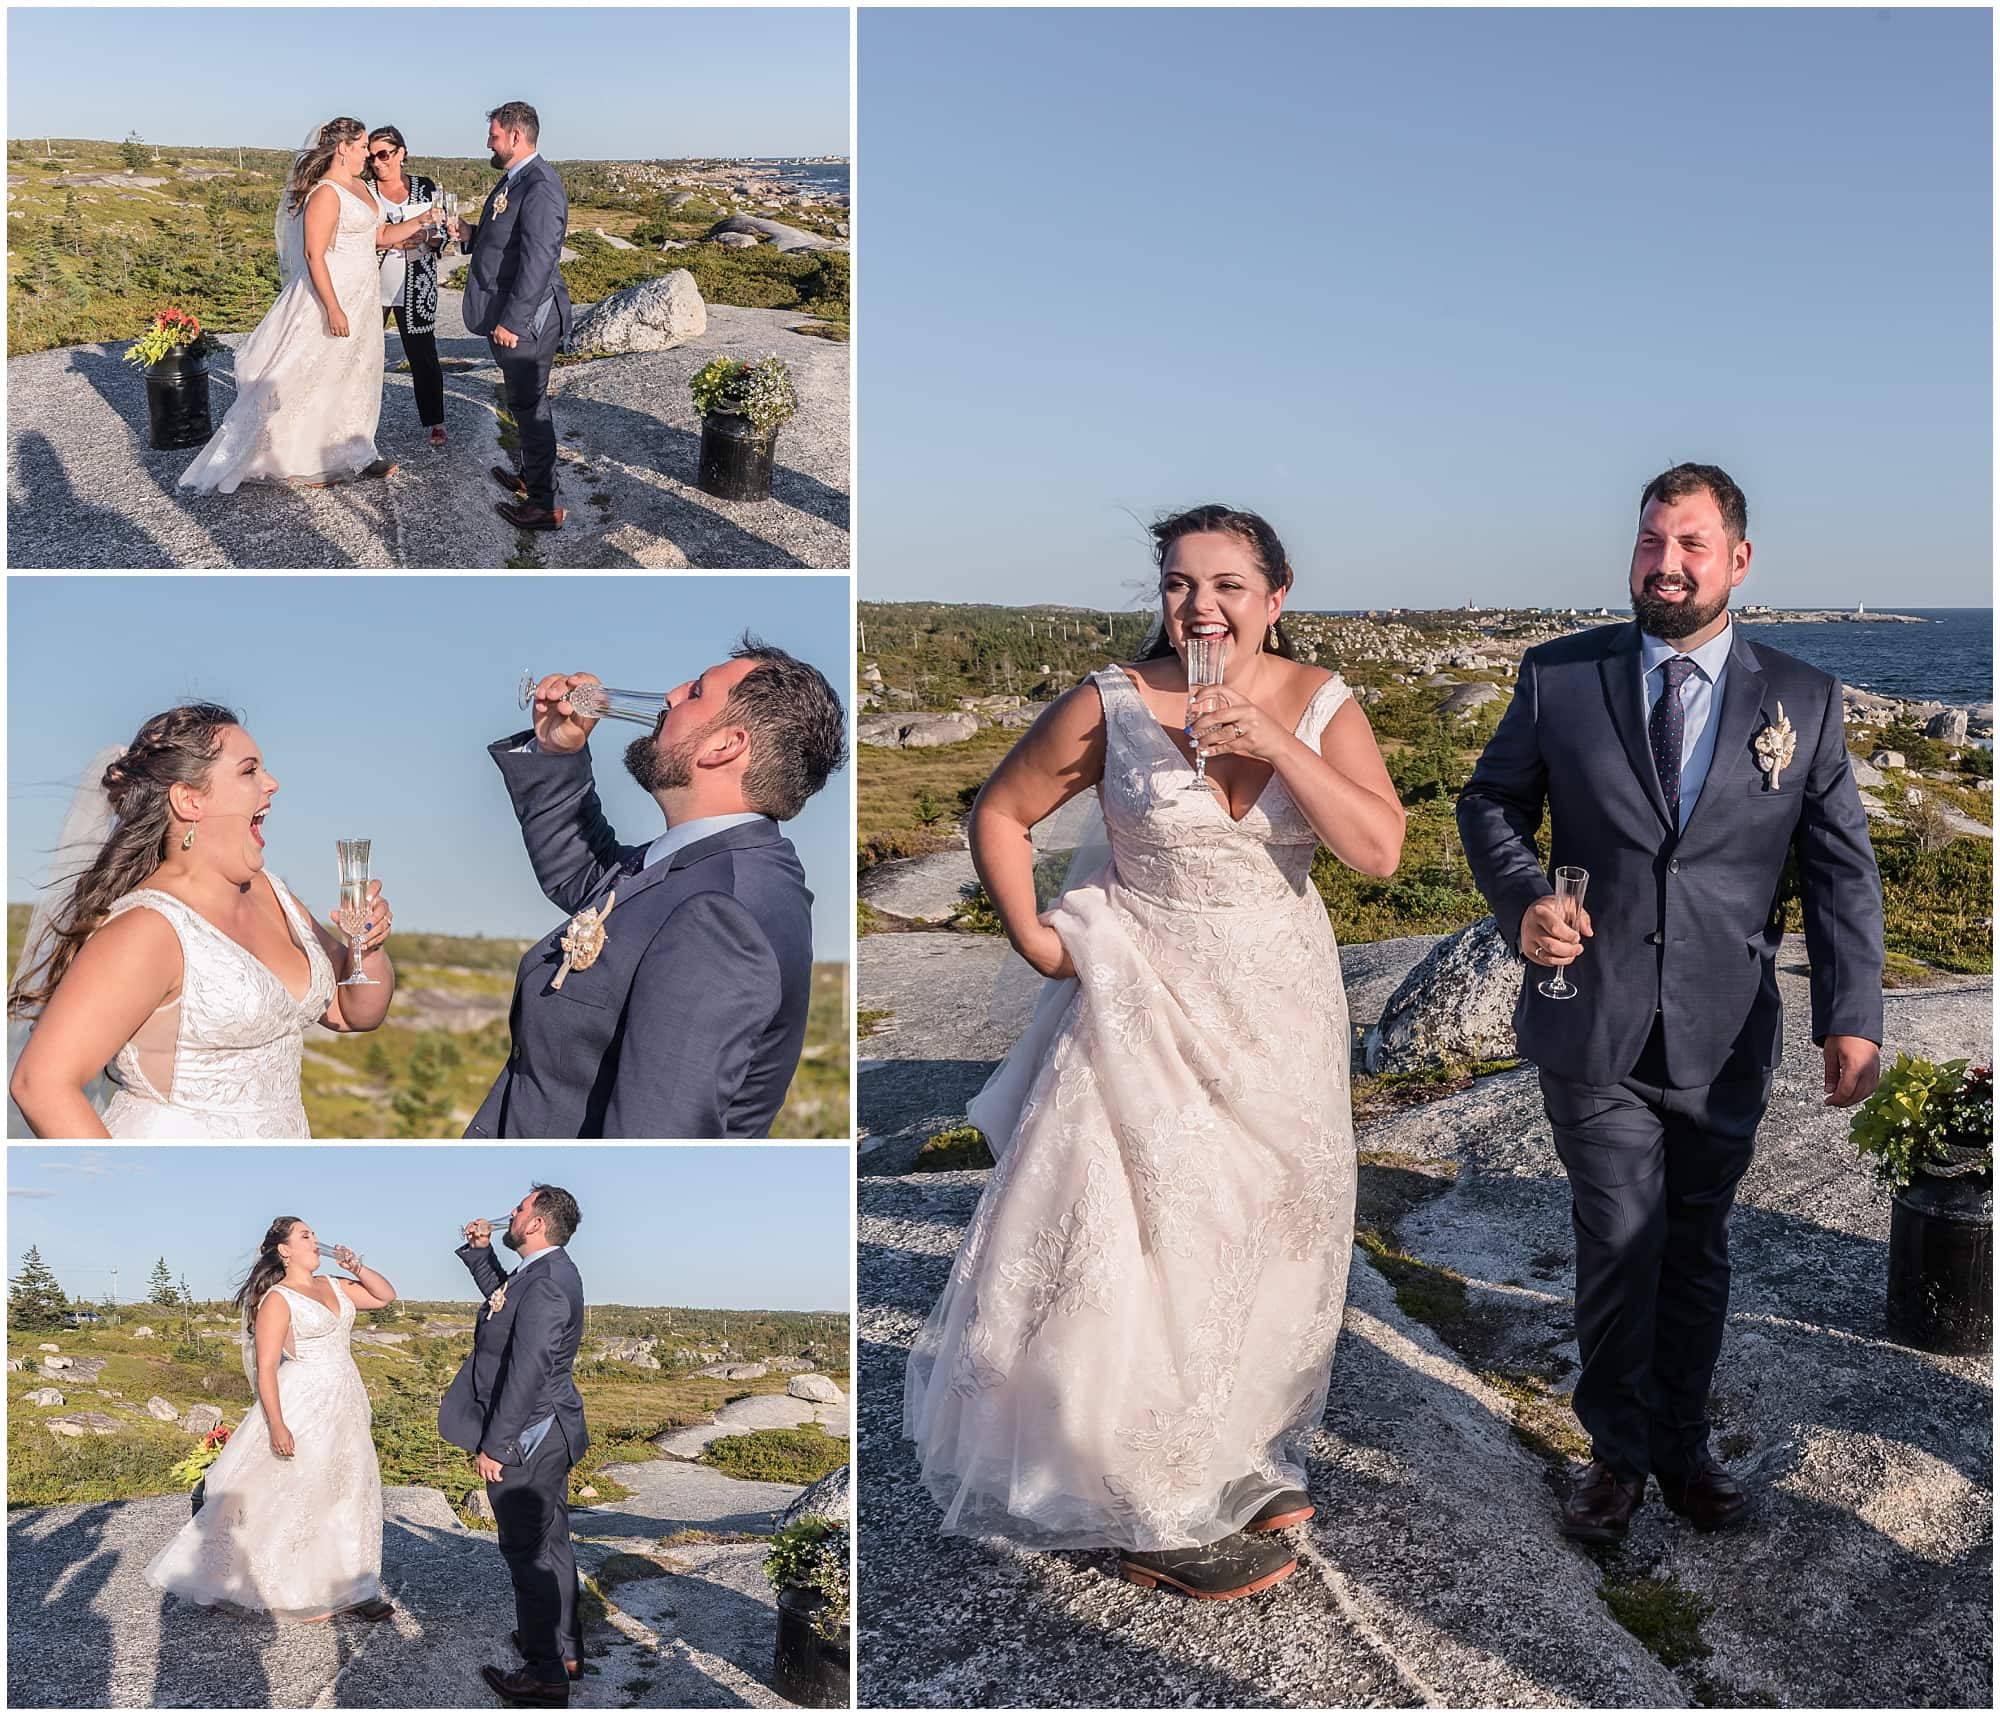 The bride and groom drink wine as a show of unity during their wedding ceremony at Peggy's Cove in Nova Scotia.